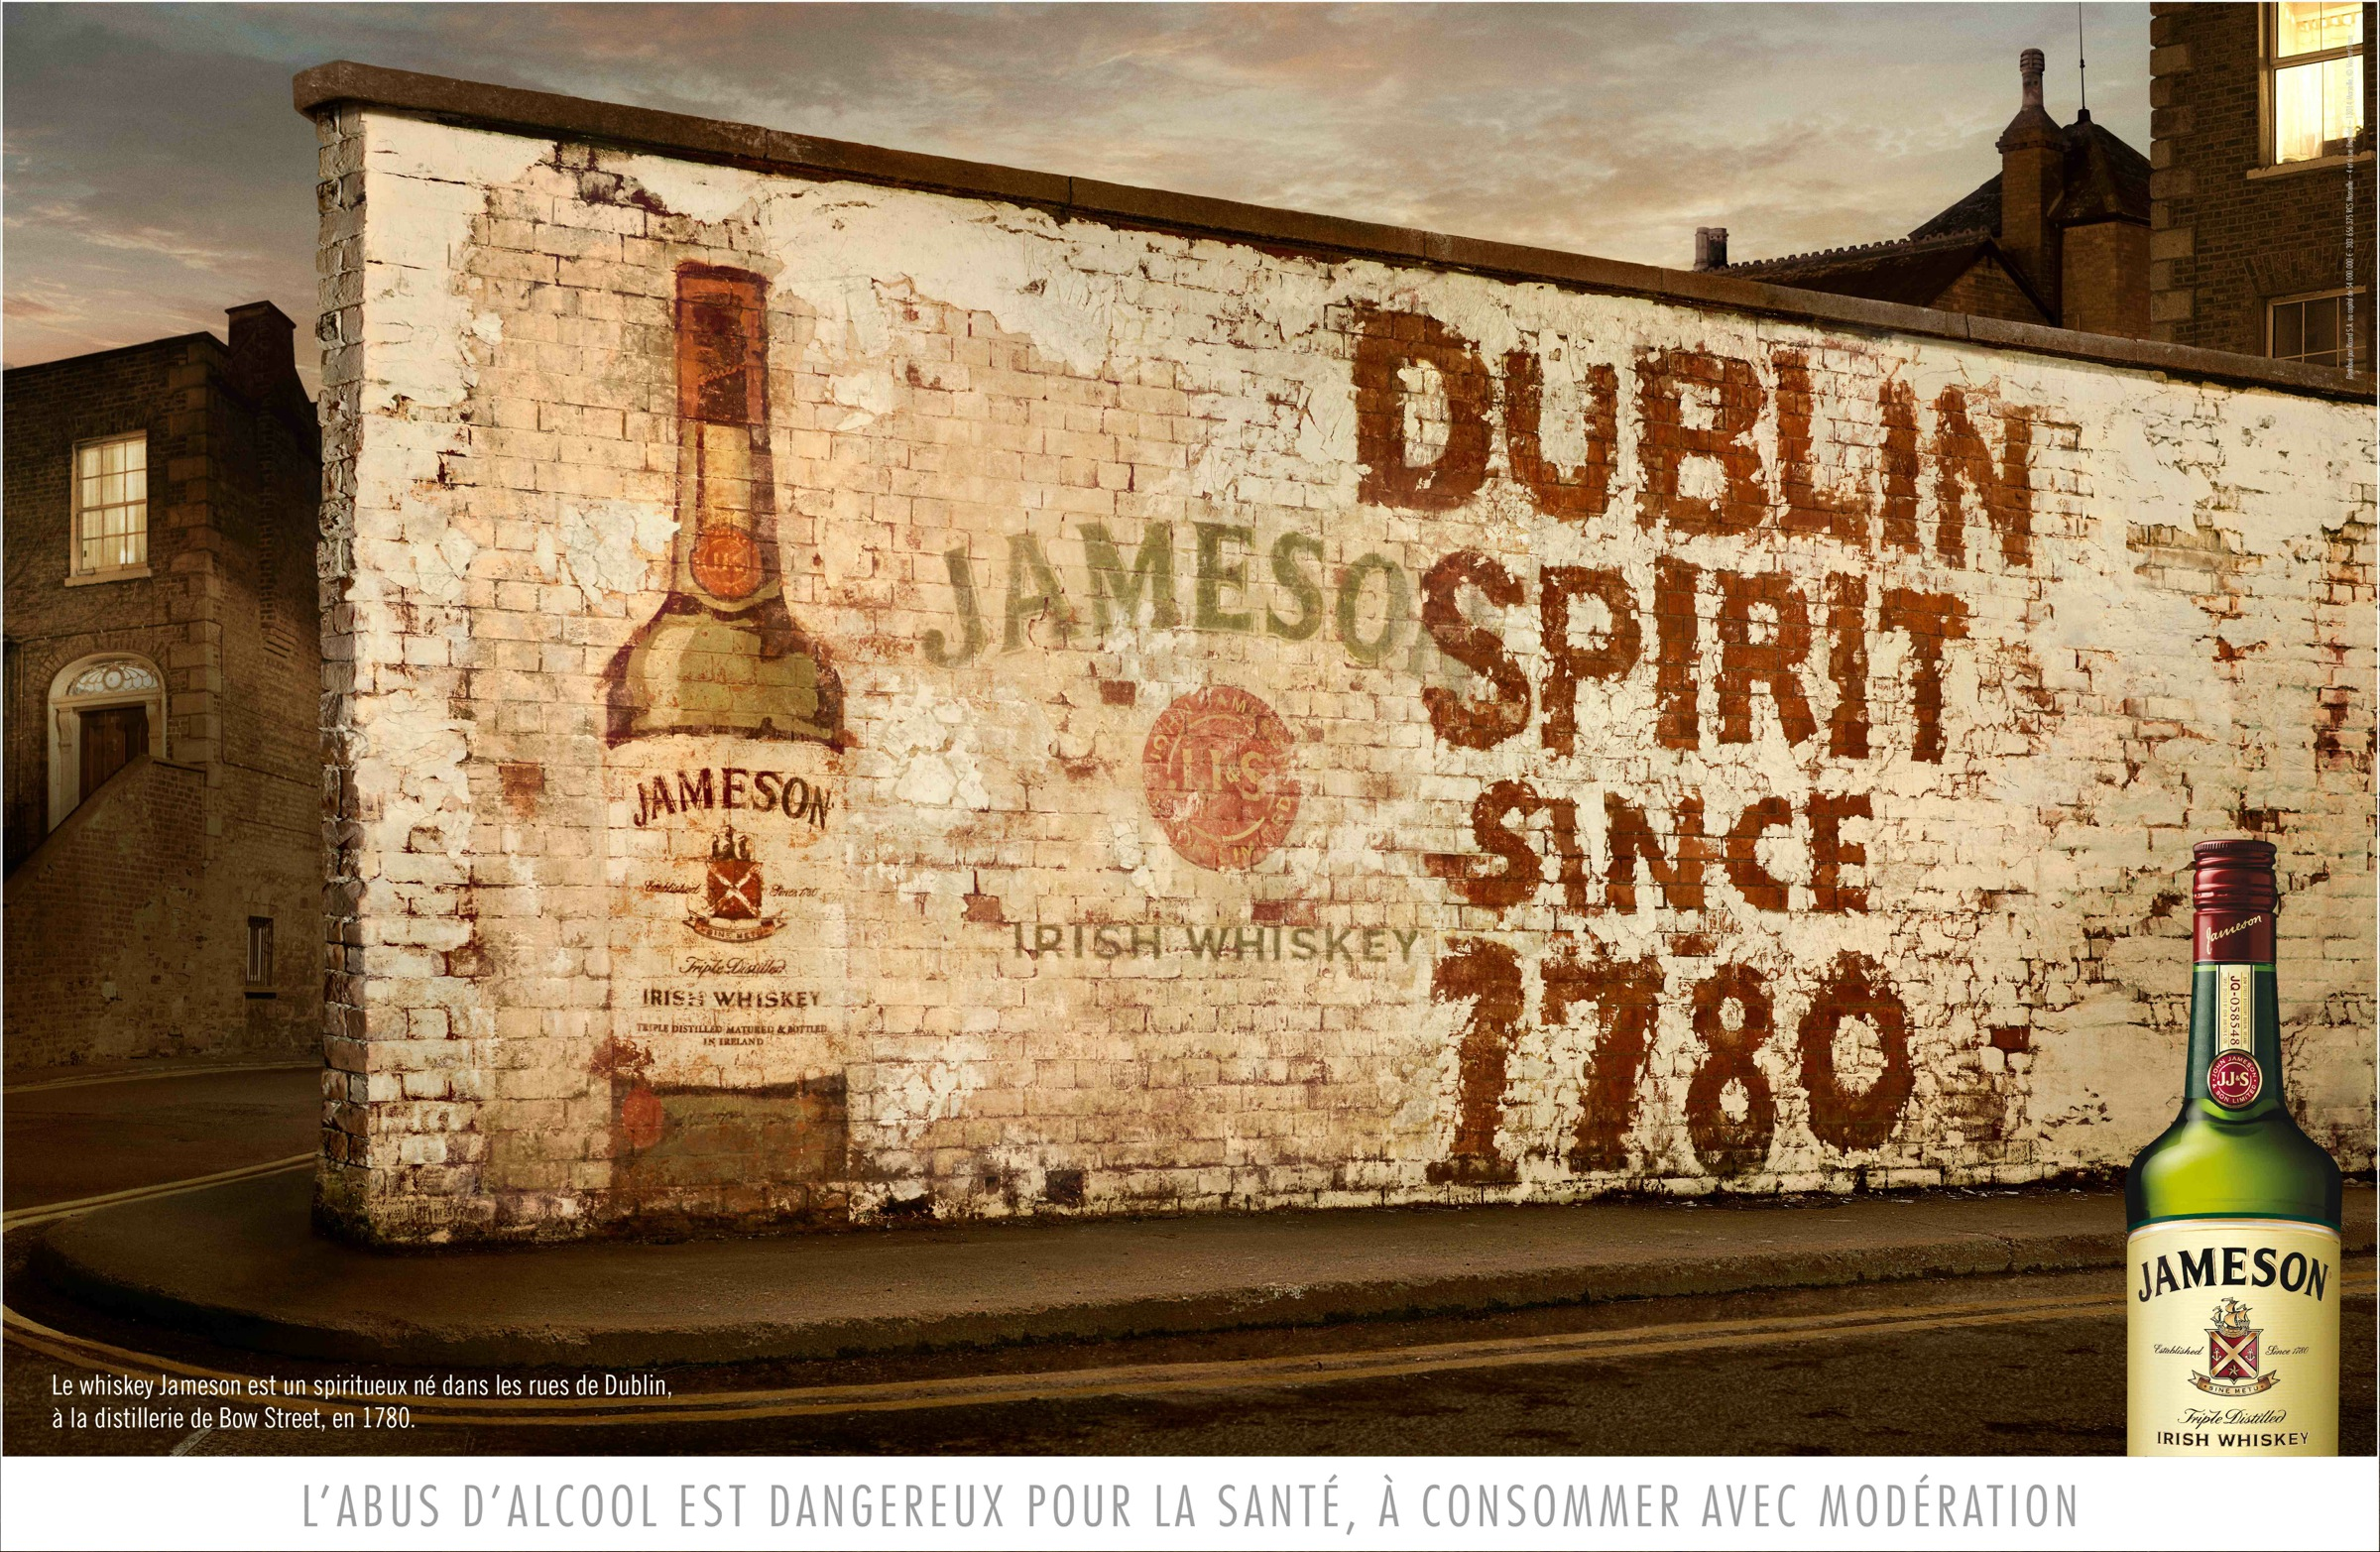 Jameson Outdoor Advert By BEING: White wall | Ads of the World™